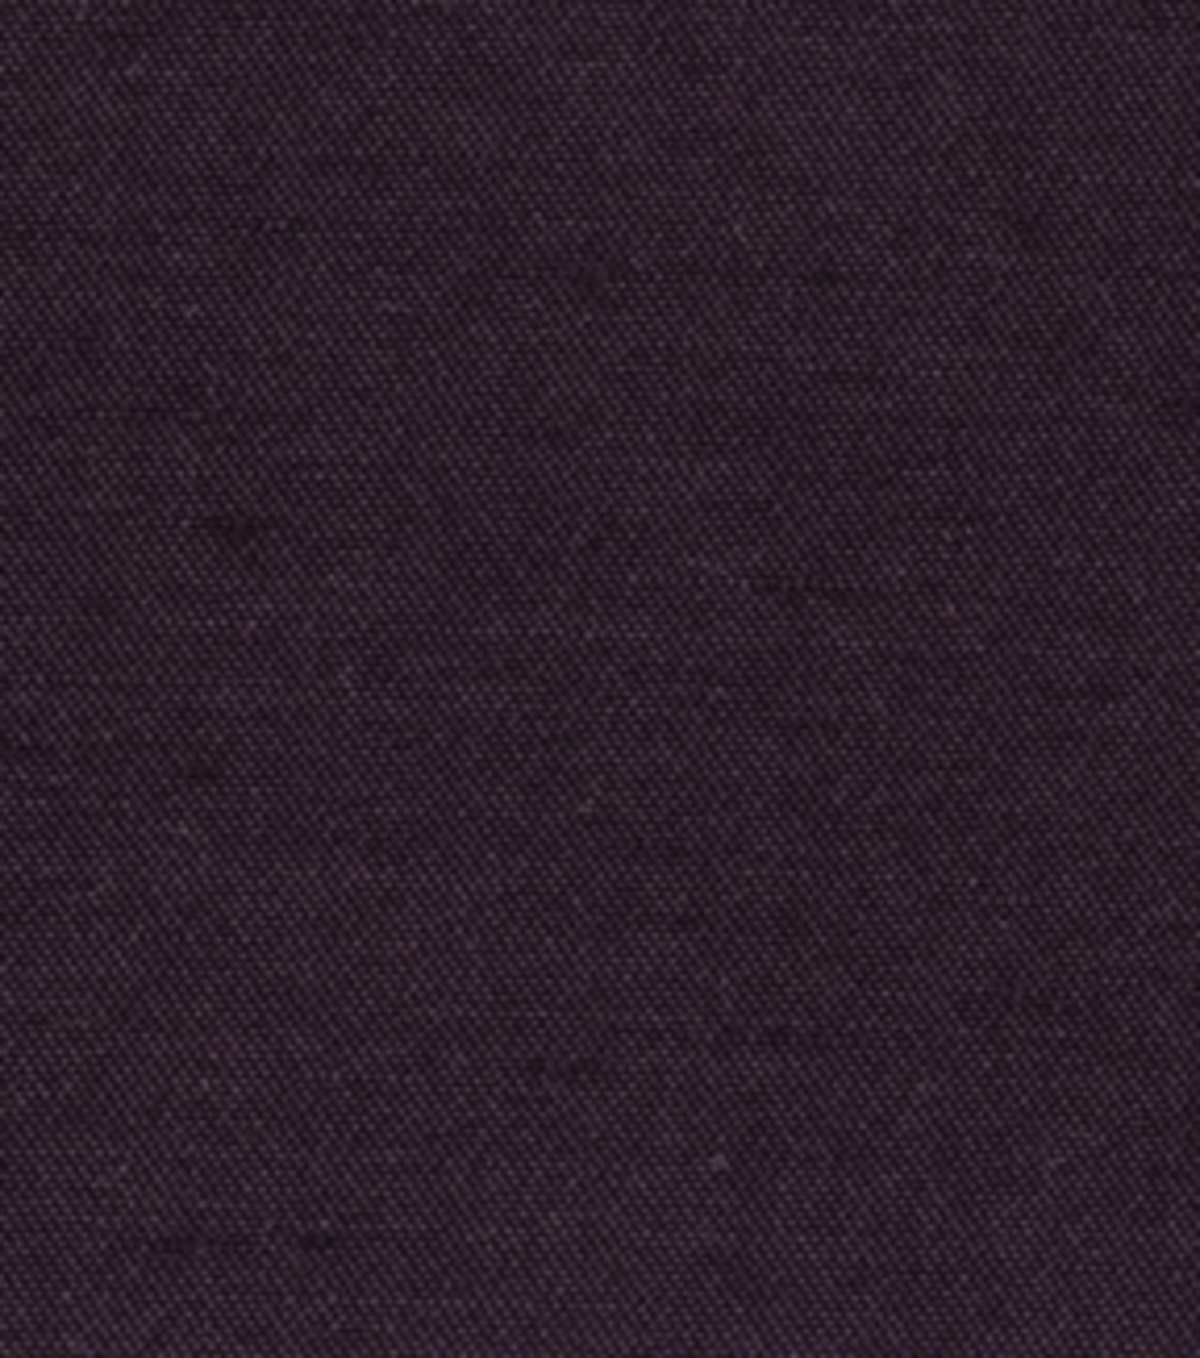 Home Decor 8\u0022x8\u0022 Fabric Swatch-Signature Series Antique Satin Blk Cherry